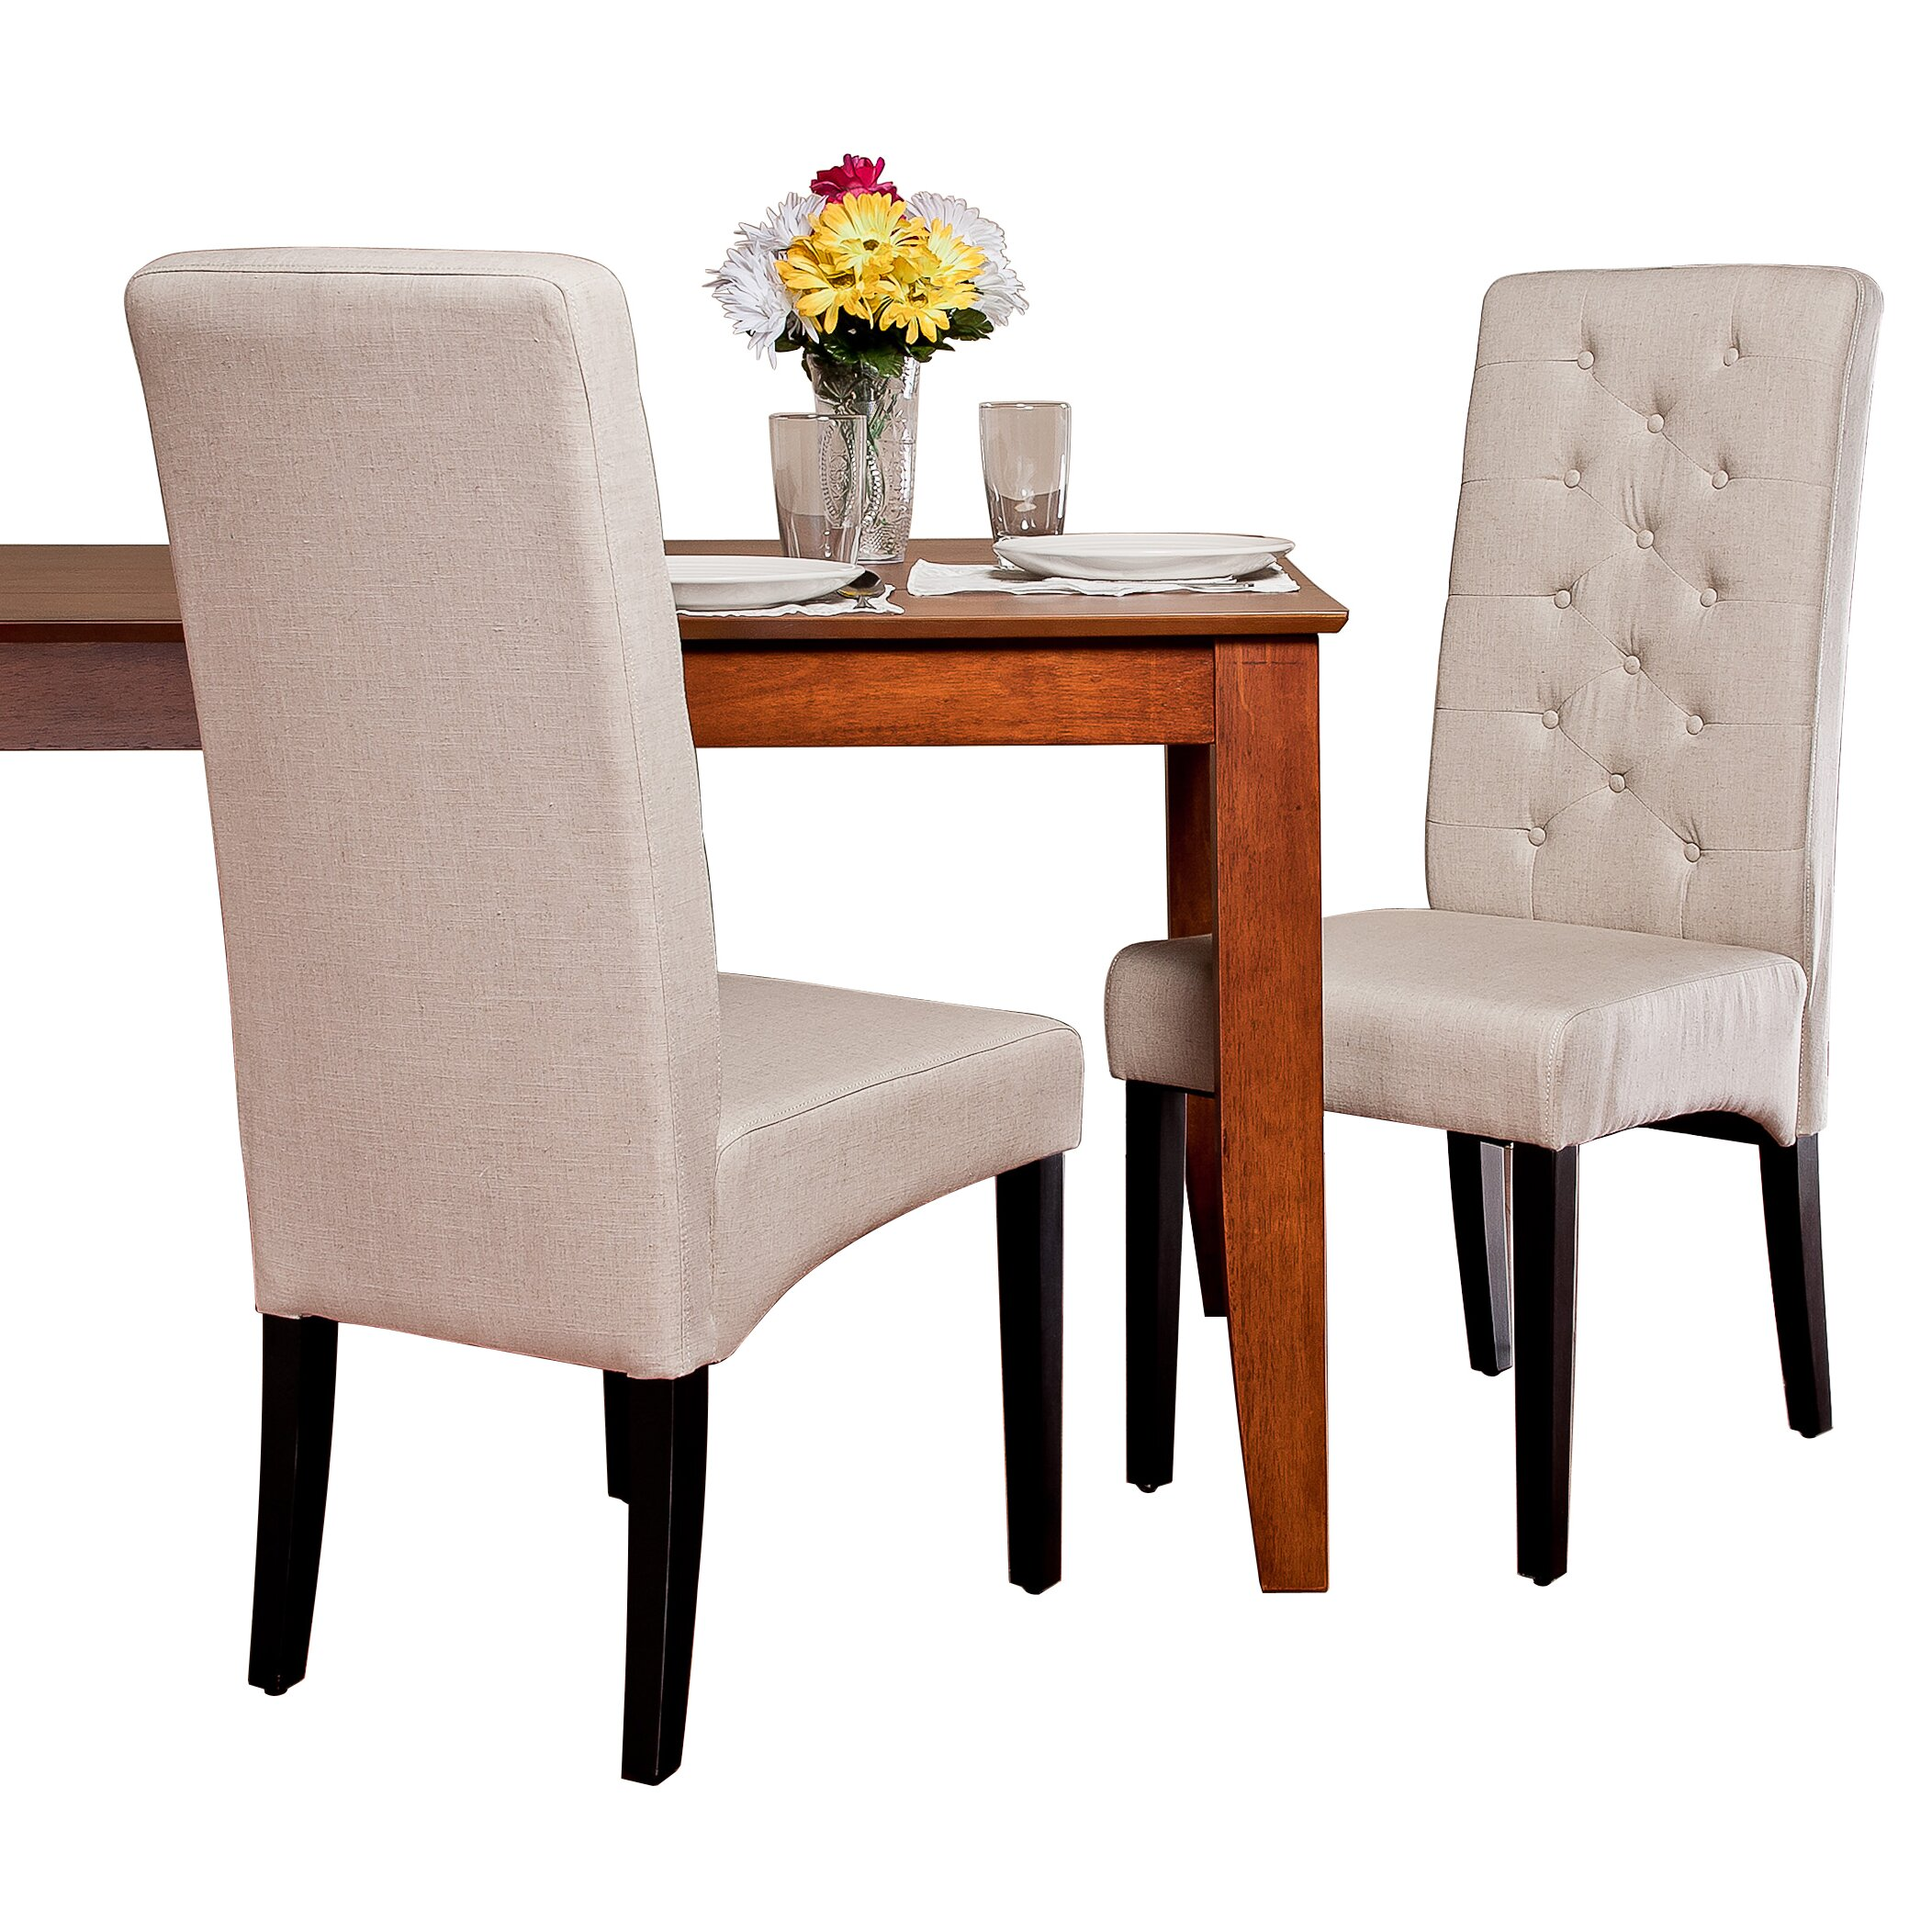 Home Loft Concepts Hereford Dining Chair u0026 Reviews : Wayfair